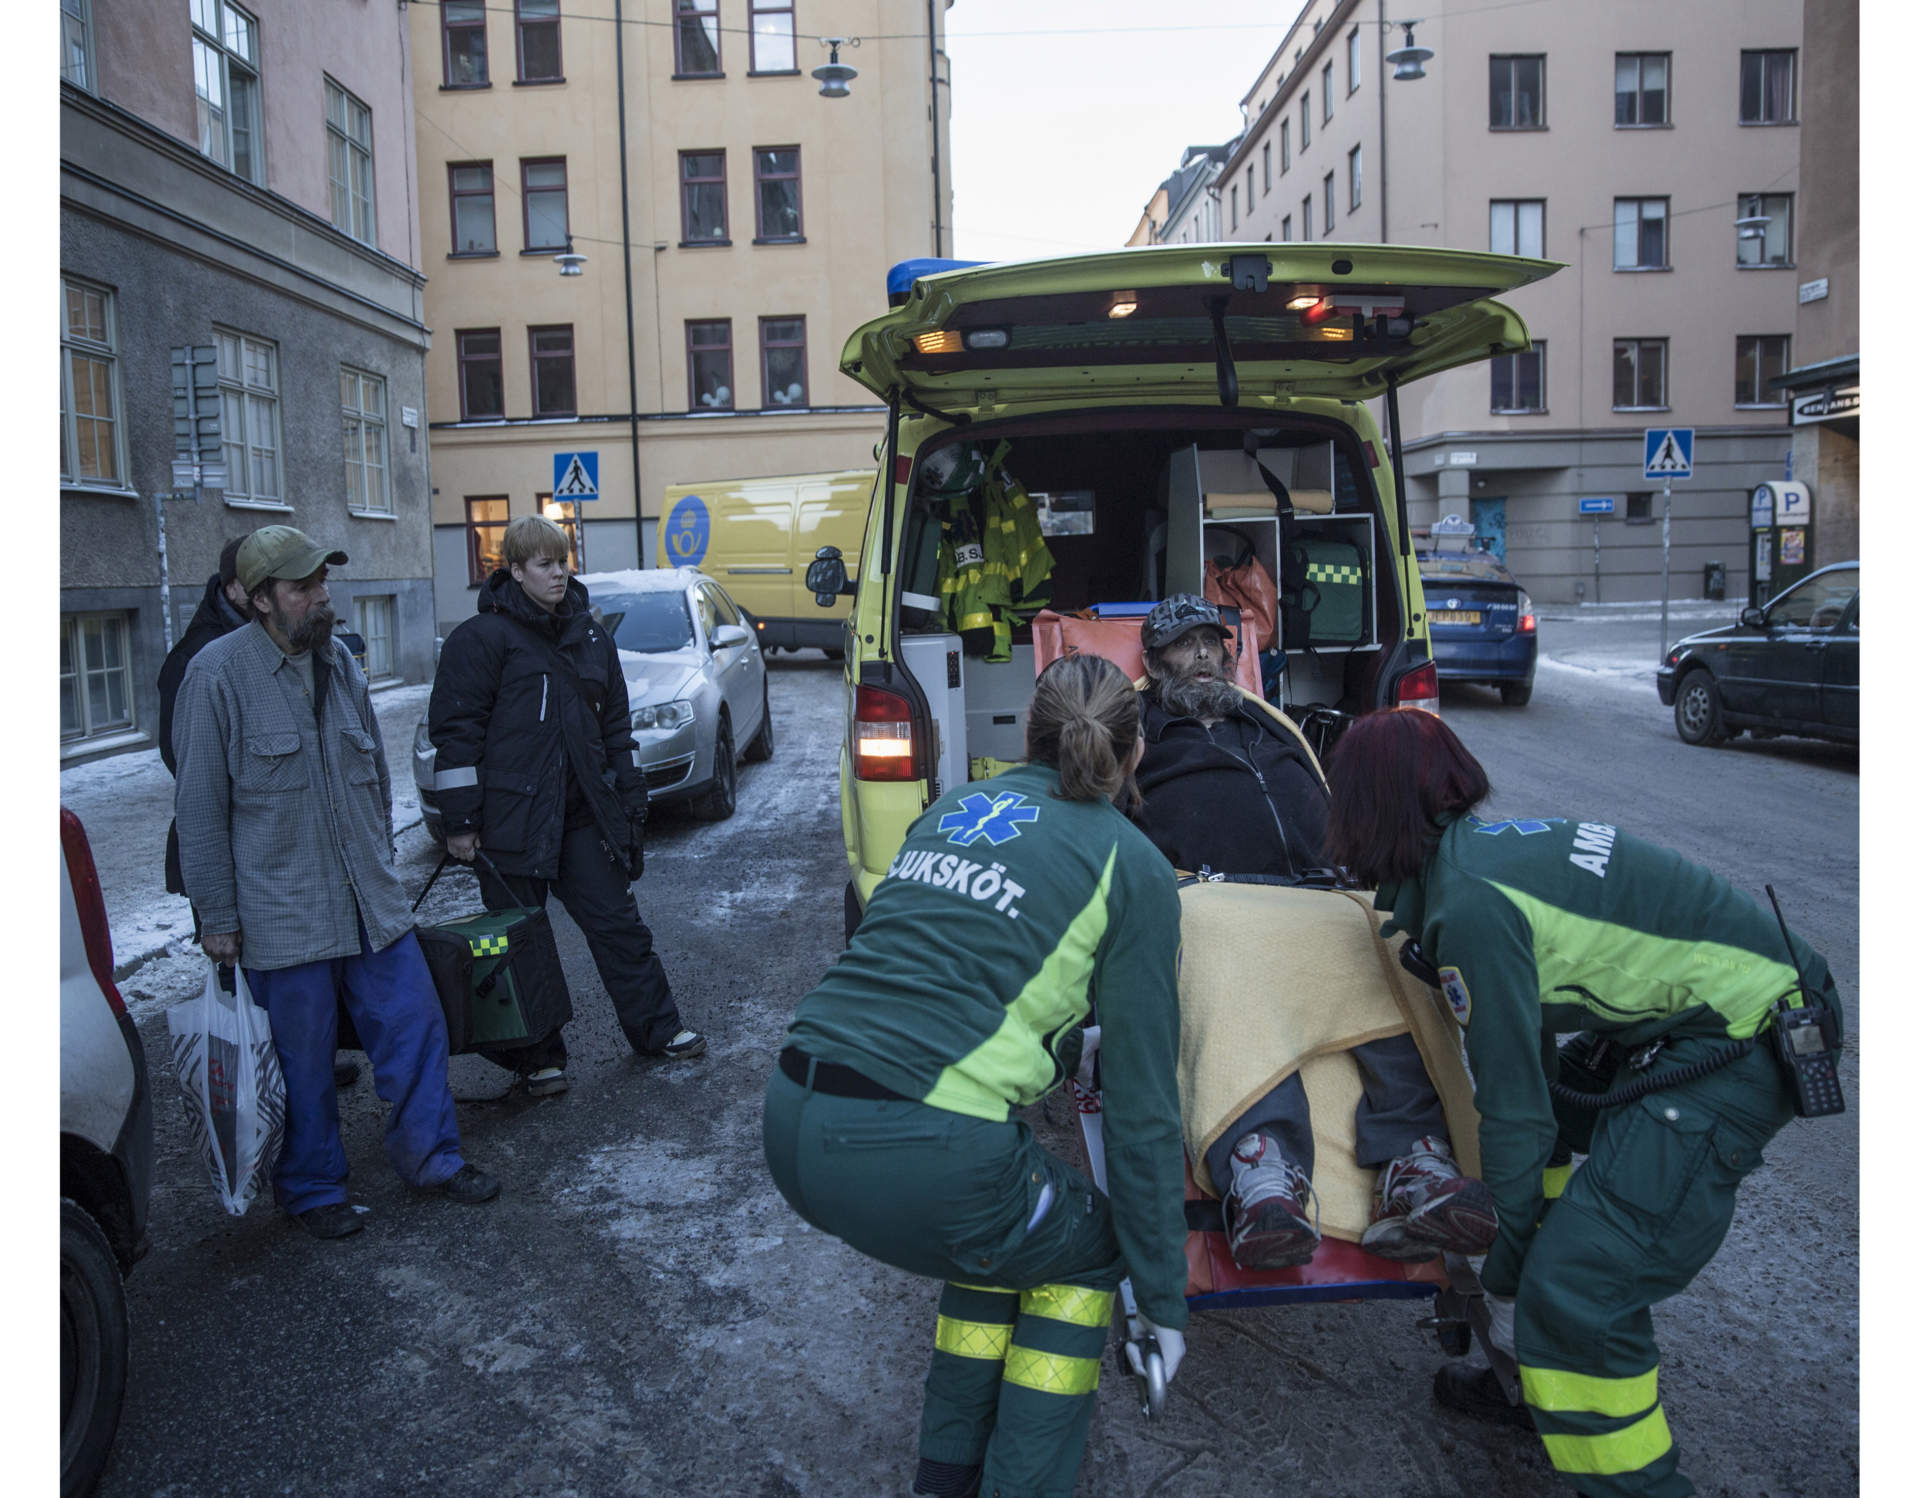 Matte calls an ambulance for Pekka to get him to the hospital. Pekka is so tired and sick that he can barely stand up.